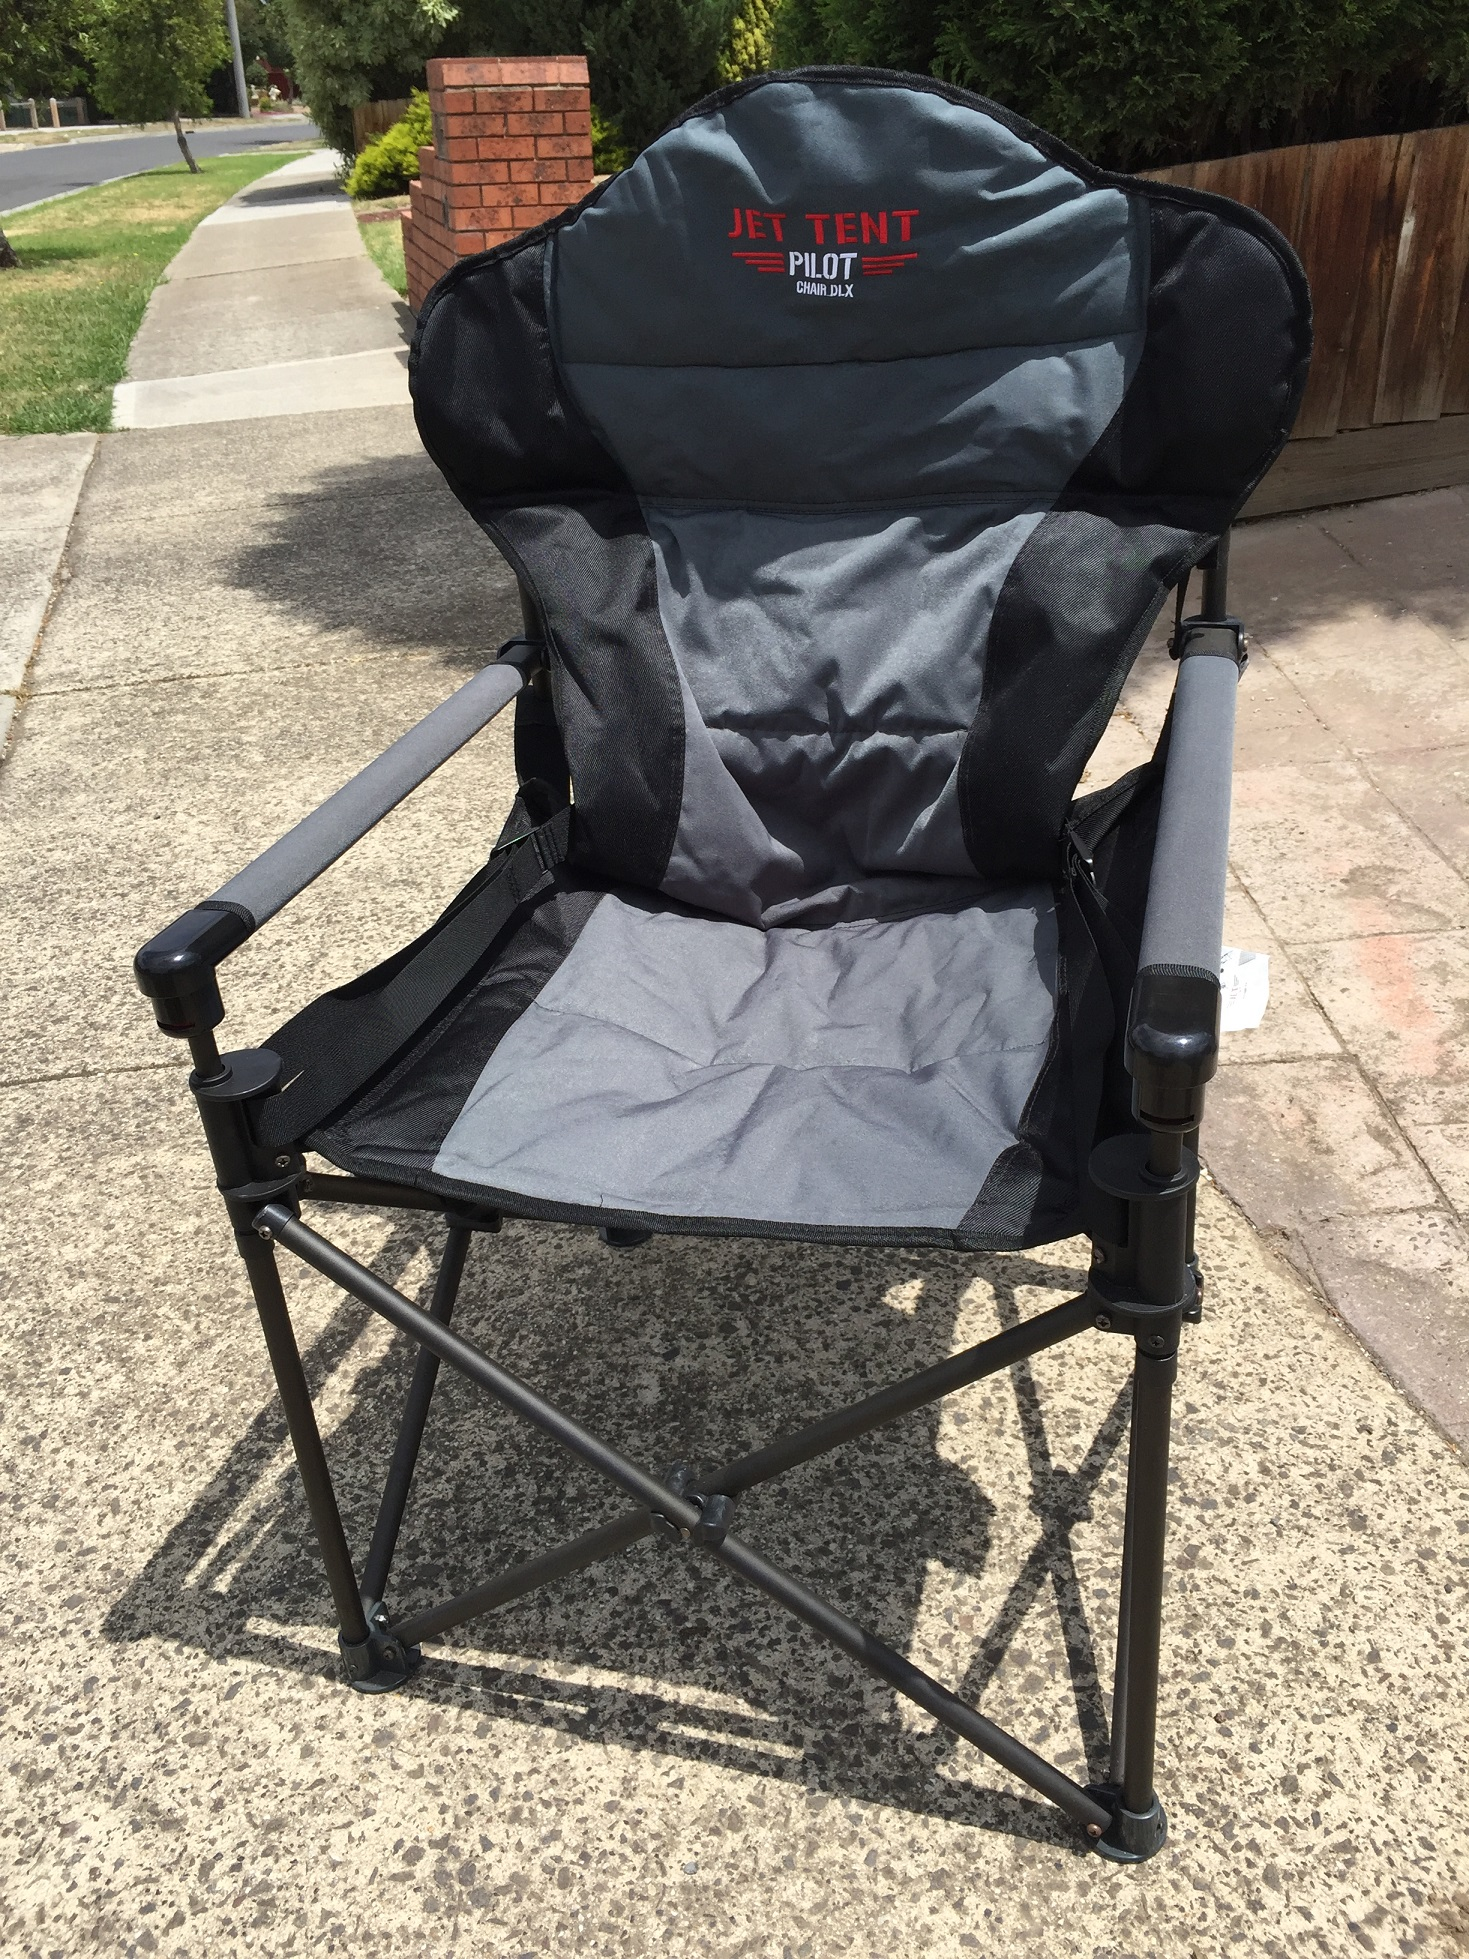 Buying a chair for general c&ing is probably not a huge issue for most people but when it comes to buying a chair for extended outback travel ... & Jet Tent Pilot DLX Camp Chair - RVeeThereYet